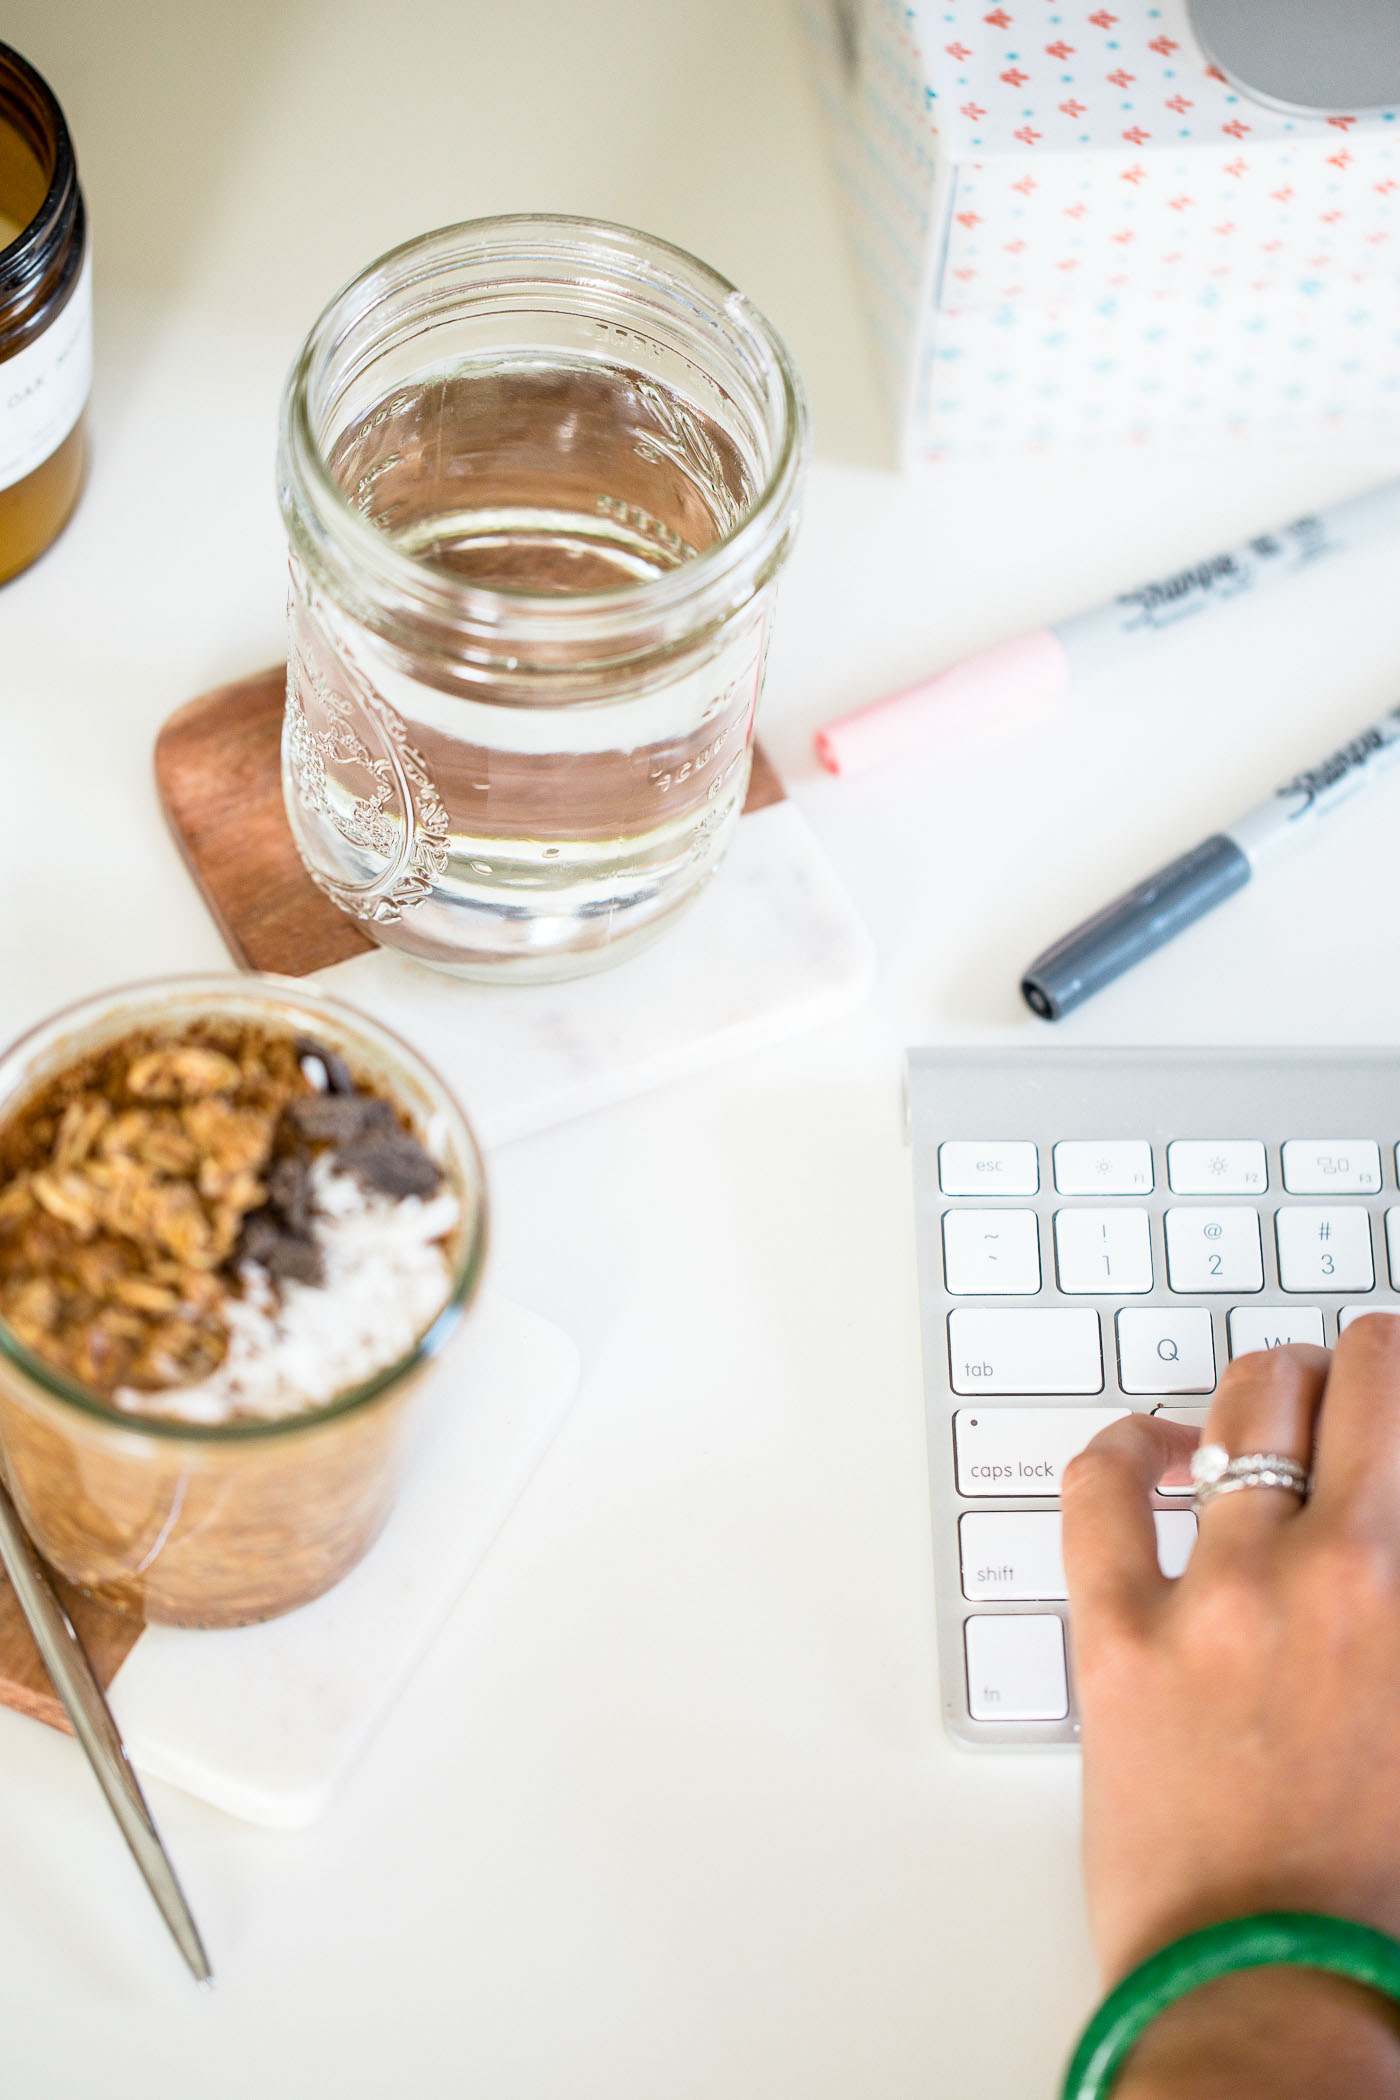 5 tips for a healthy & productive morning while working from home, plus a bonus chocolate coconut cold brew overnight oats recipe! #playswellwithbutter #creativepreneur #workfromhome #morningroutine #healthymorning #healthybreakfast #easybreakfastrecipe